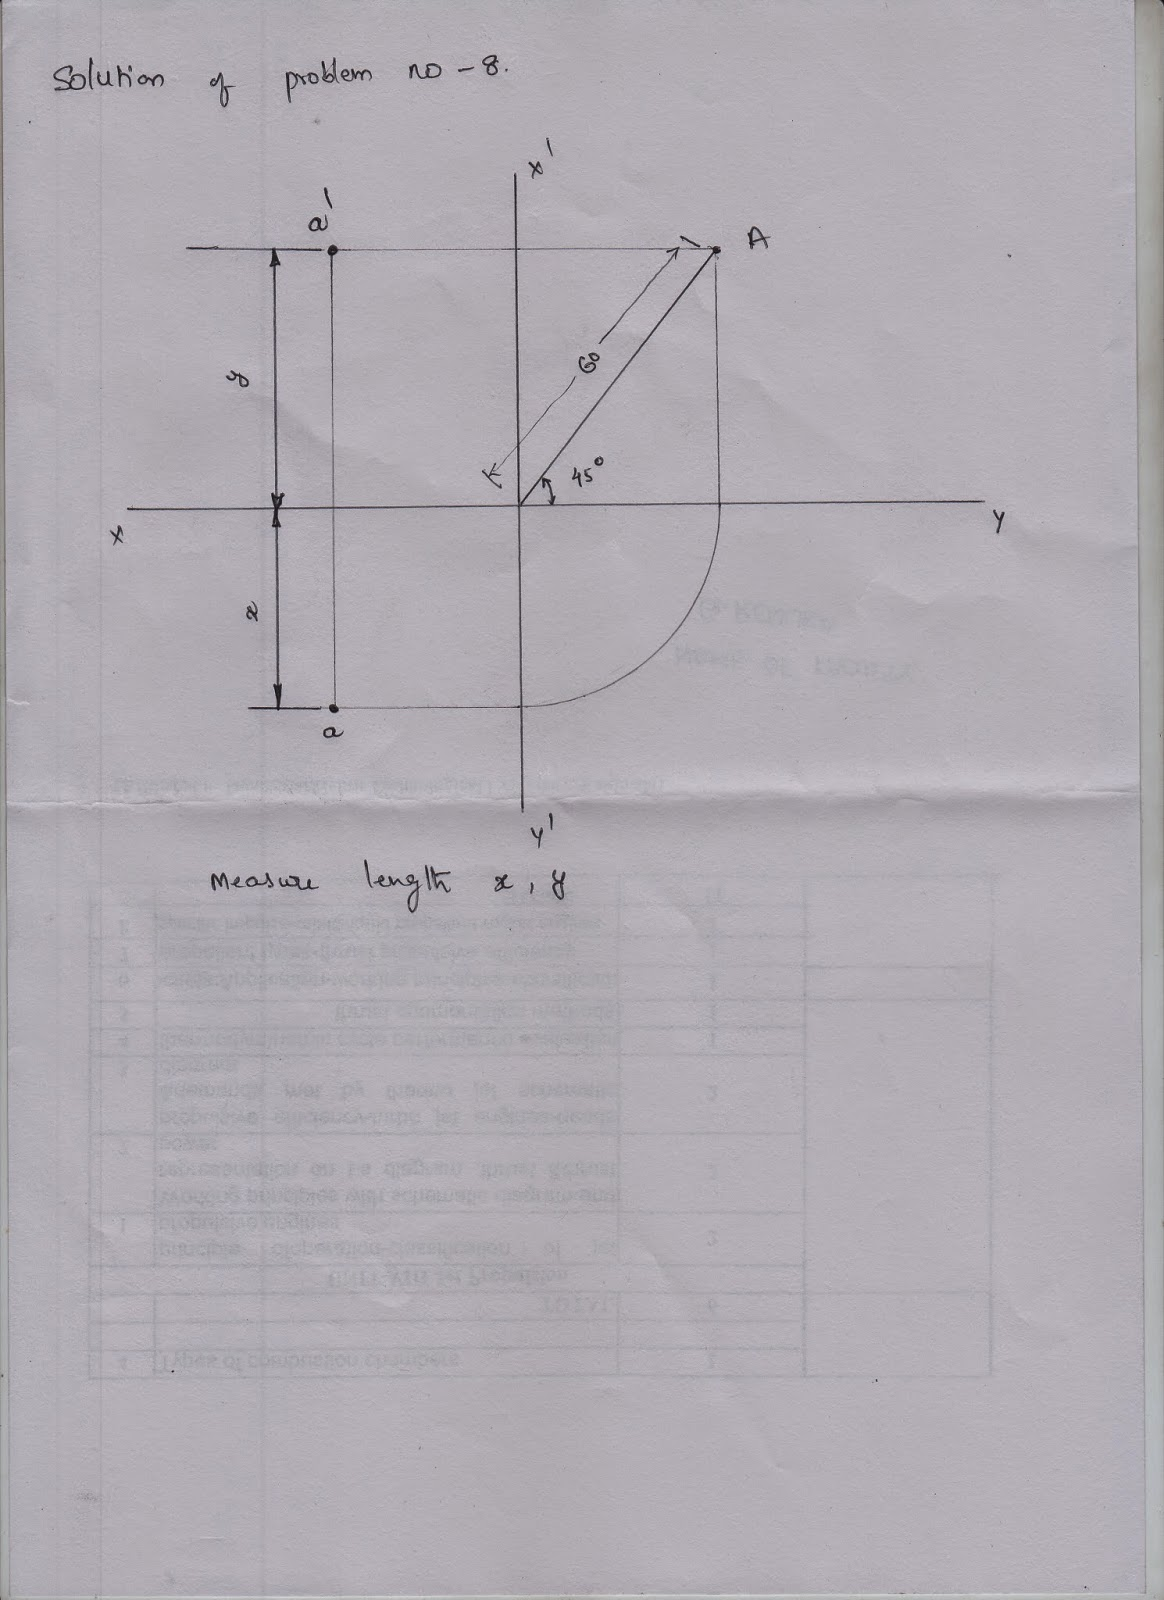 mechanical ed projection of points exercise problems in nd bhatt rh vara343 blogspot com solution manual of engineering drawing by n.d bhatt 50th edition pdf Civil Engineering Drawing